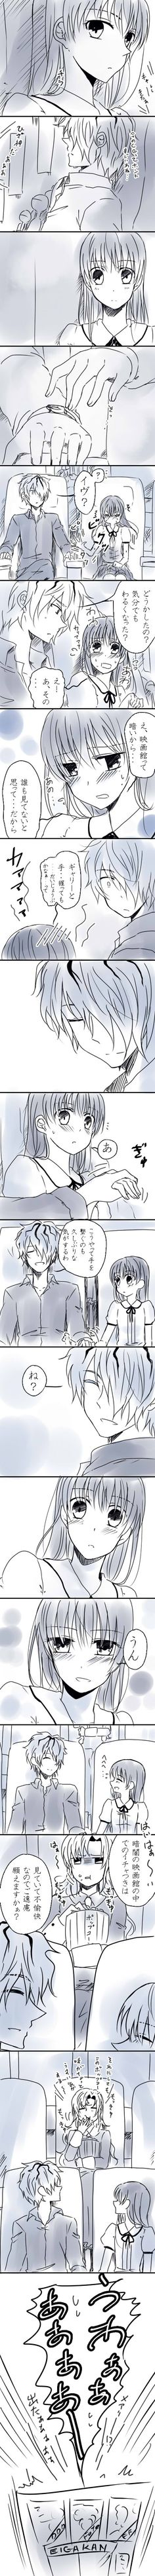 """Gary: """"The CG nowadays is amazing, isn't it?""""  Gary: Eve?  Gary: What's wrong, Eve? Are you feeling sick?  Eve: No...it's just that the movie theater is so dark, and I thought no one was watching...so...   (8th panel) Eve: Gary, I was wondering... if it would be alright if we held hands...  (10th panel) Gary: It's been awhile since we held hands like this...  (11th panel) Gary: Right?   (13th panel) Eve: Yeah..."""